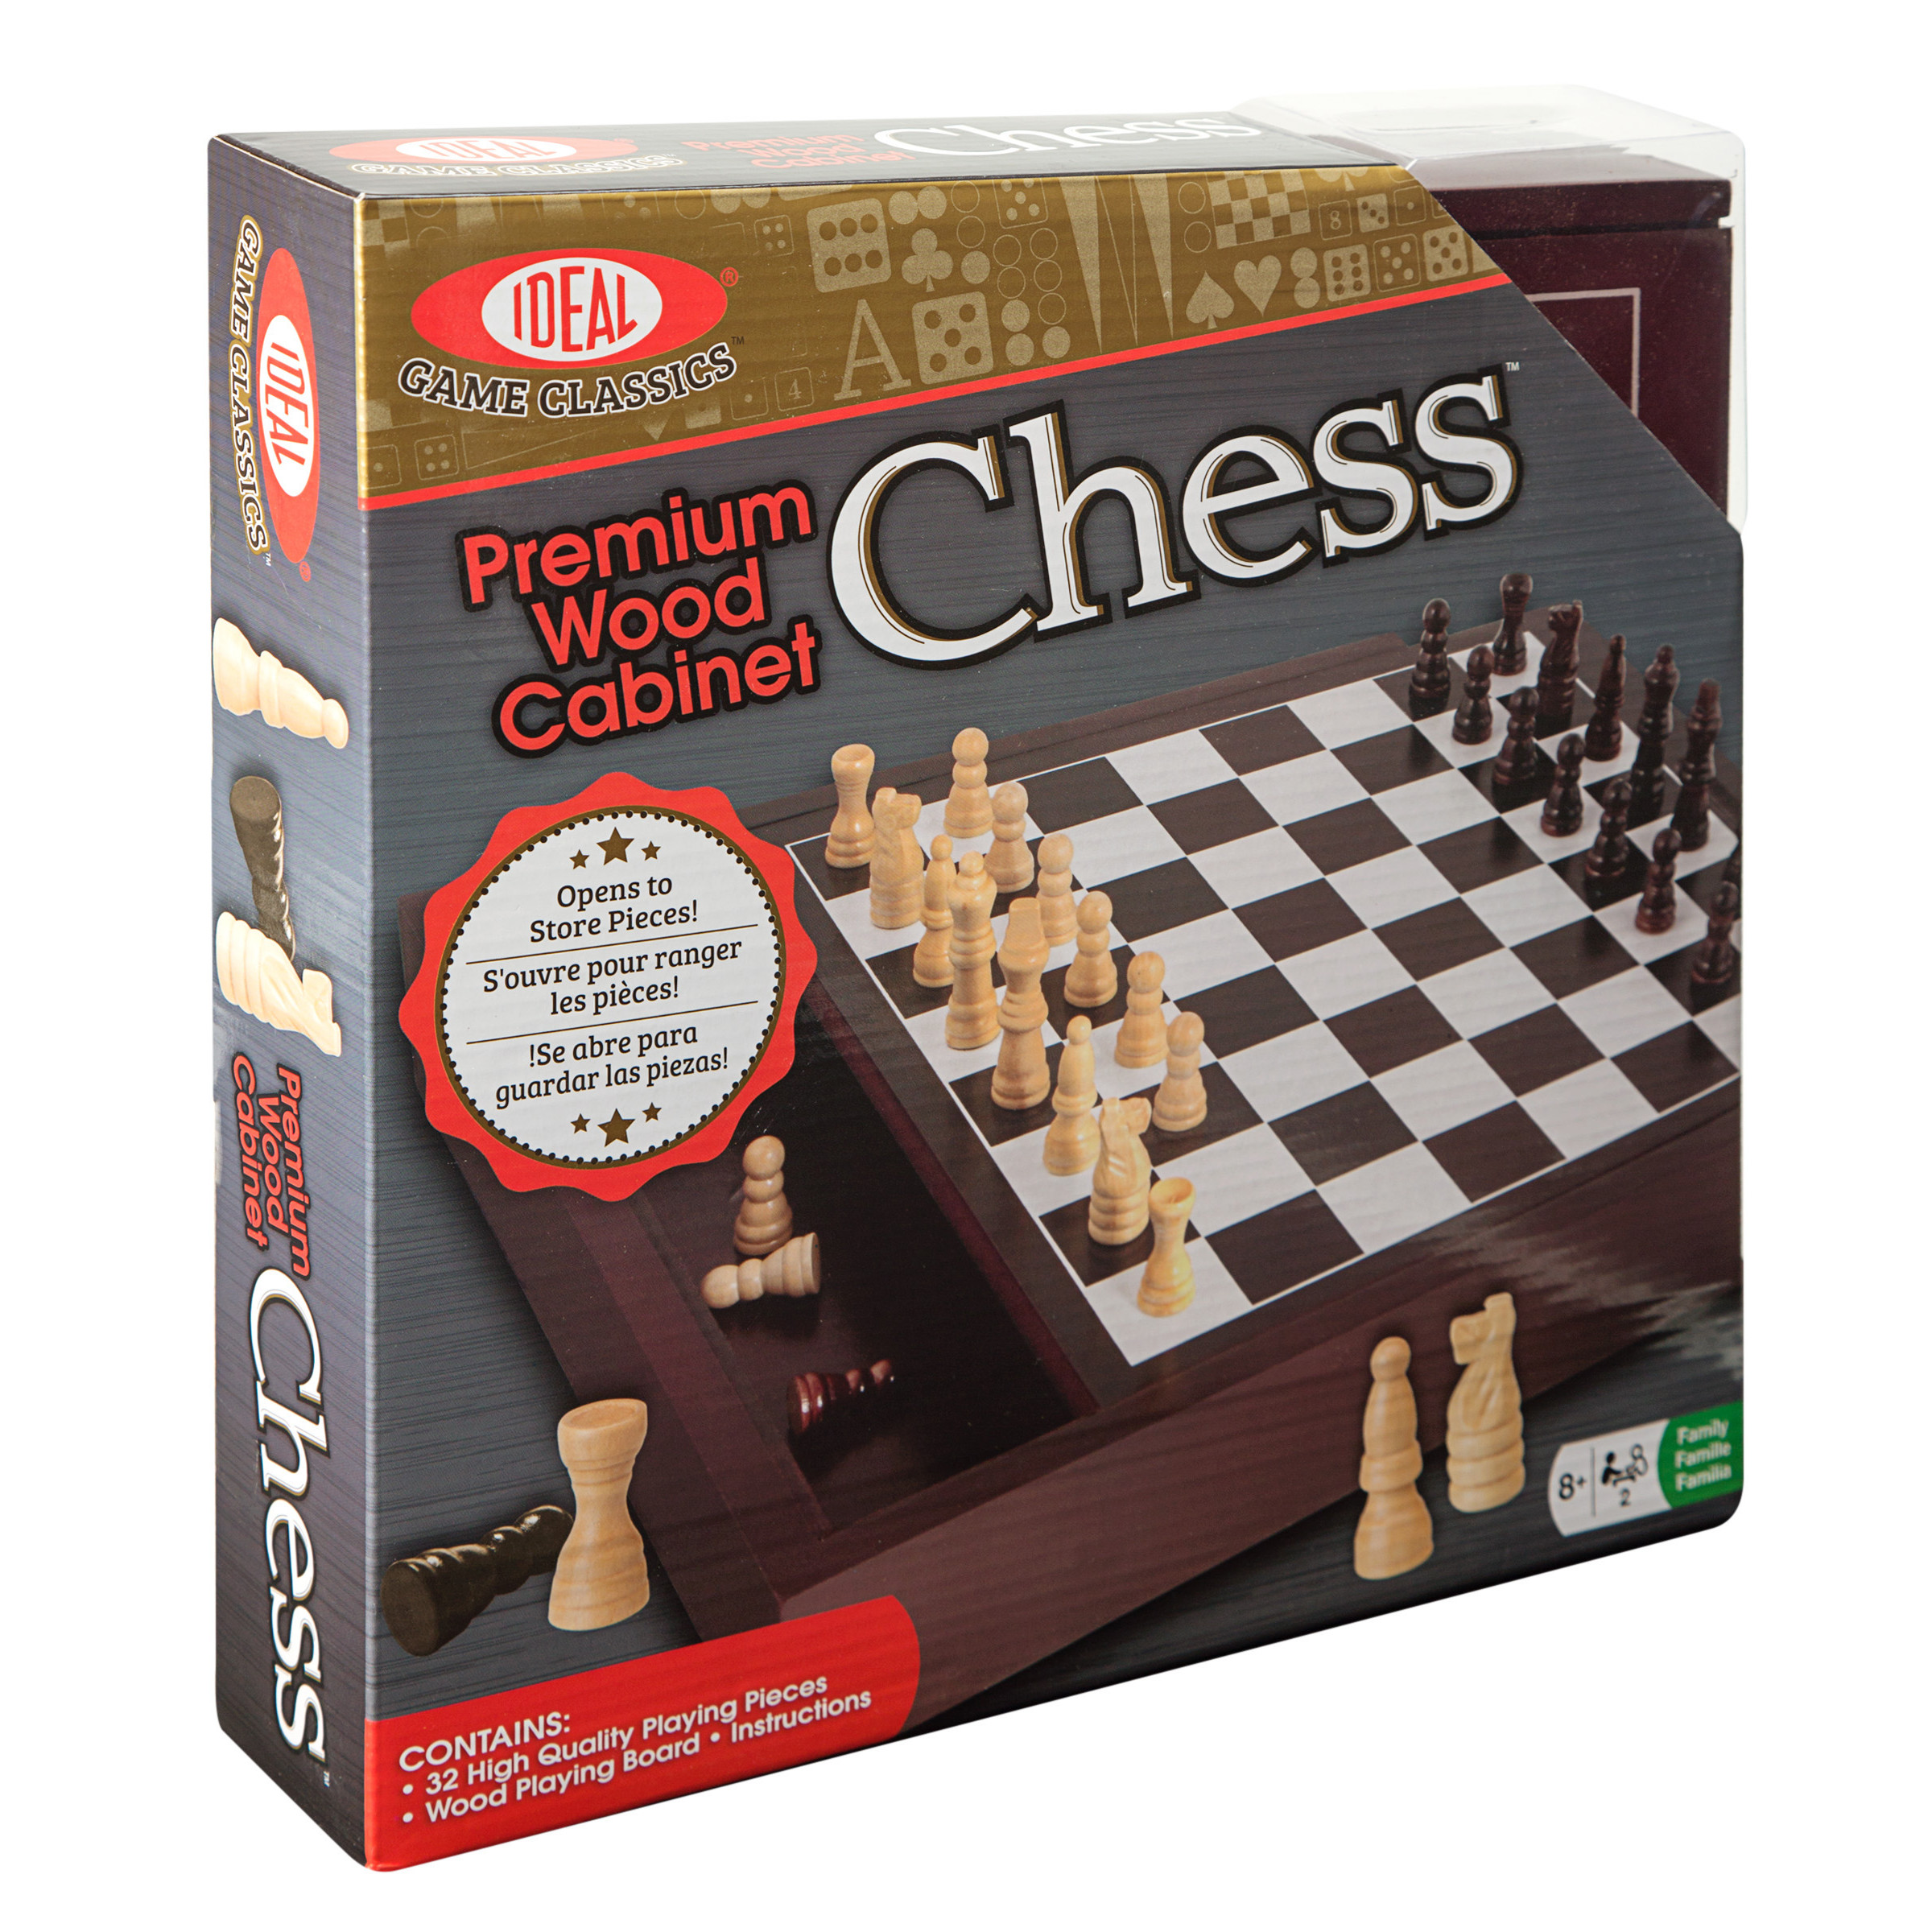 Ideal Premium Wood Cabinet Chess